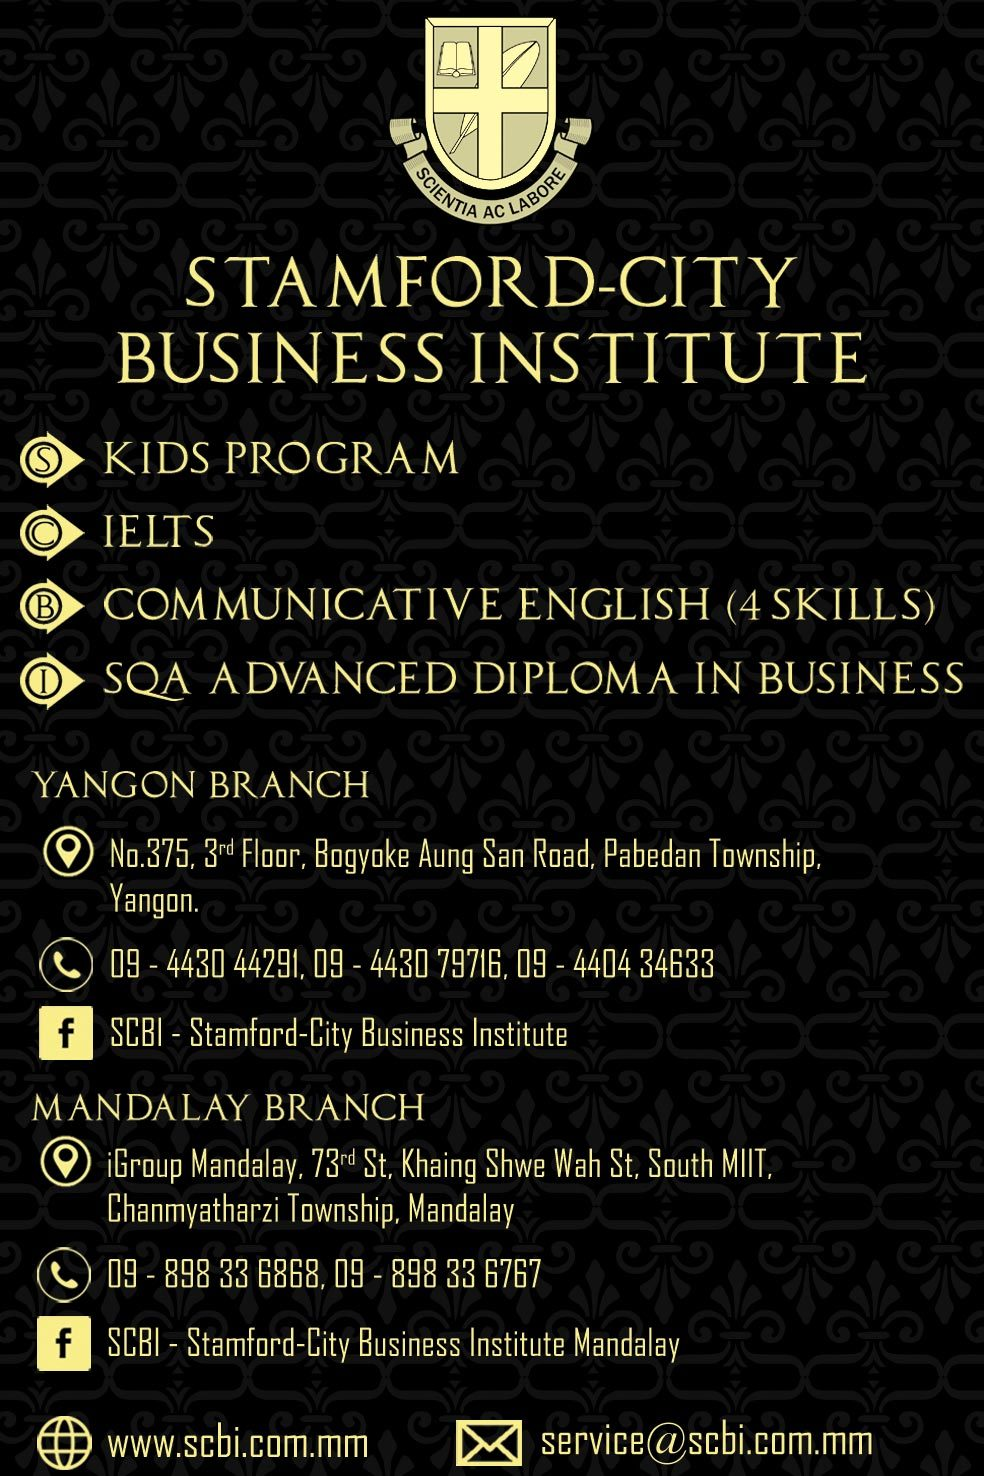 Stamford-City-Business-Institute_Education-Services_(A)_1587.jpg